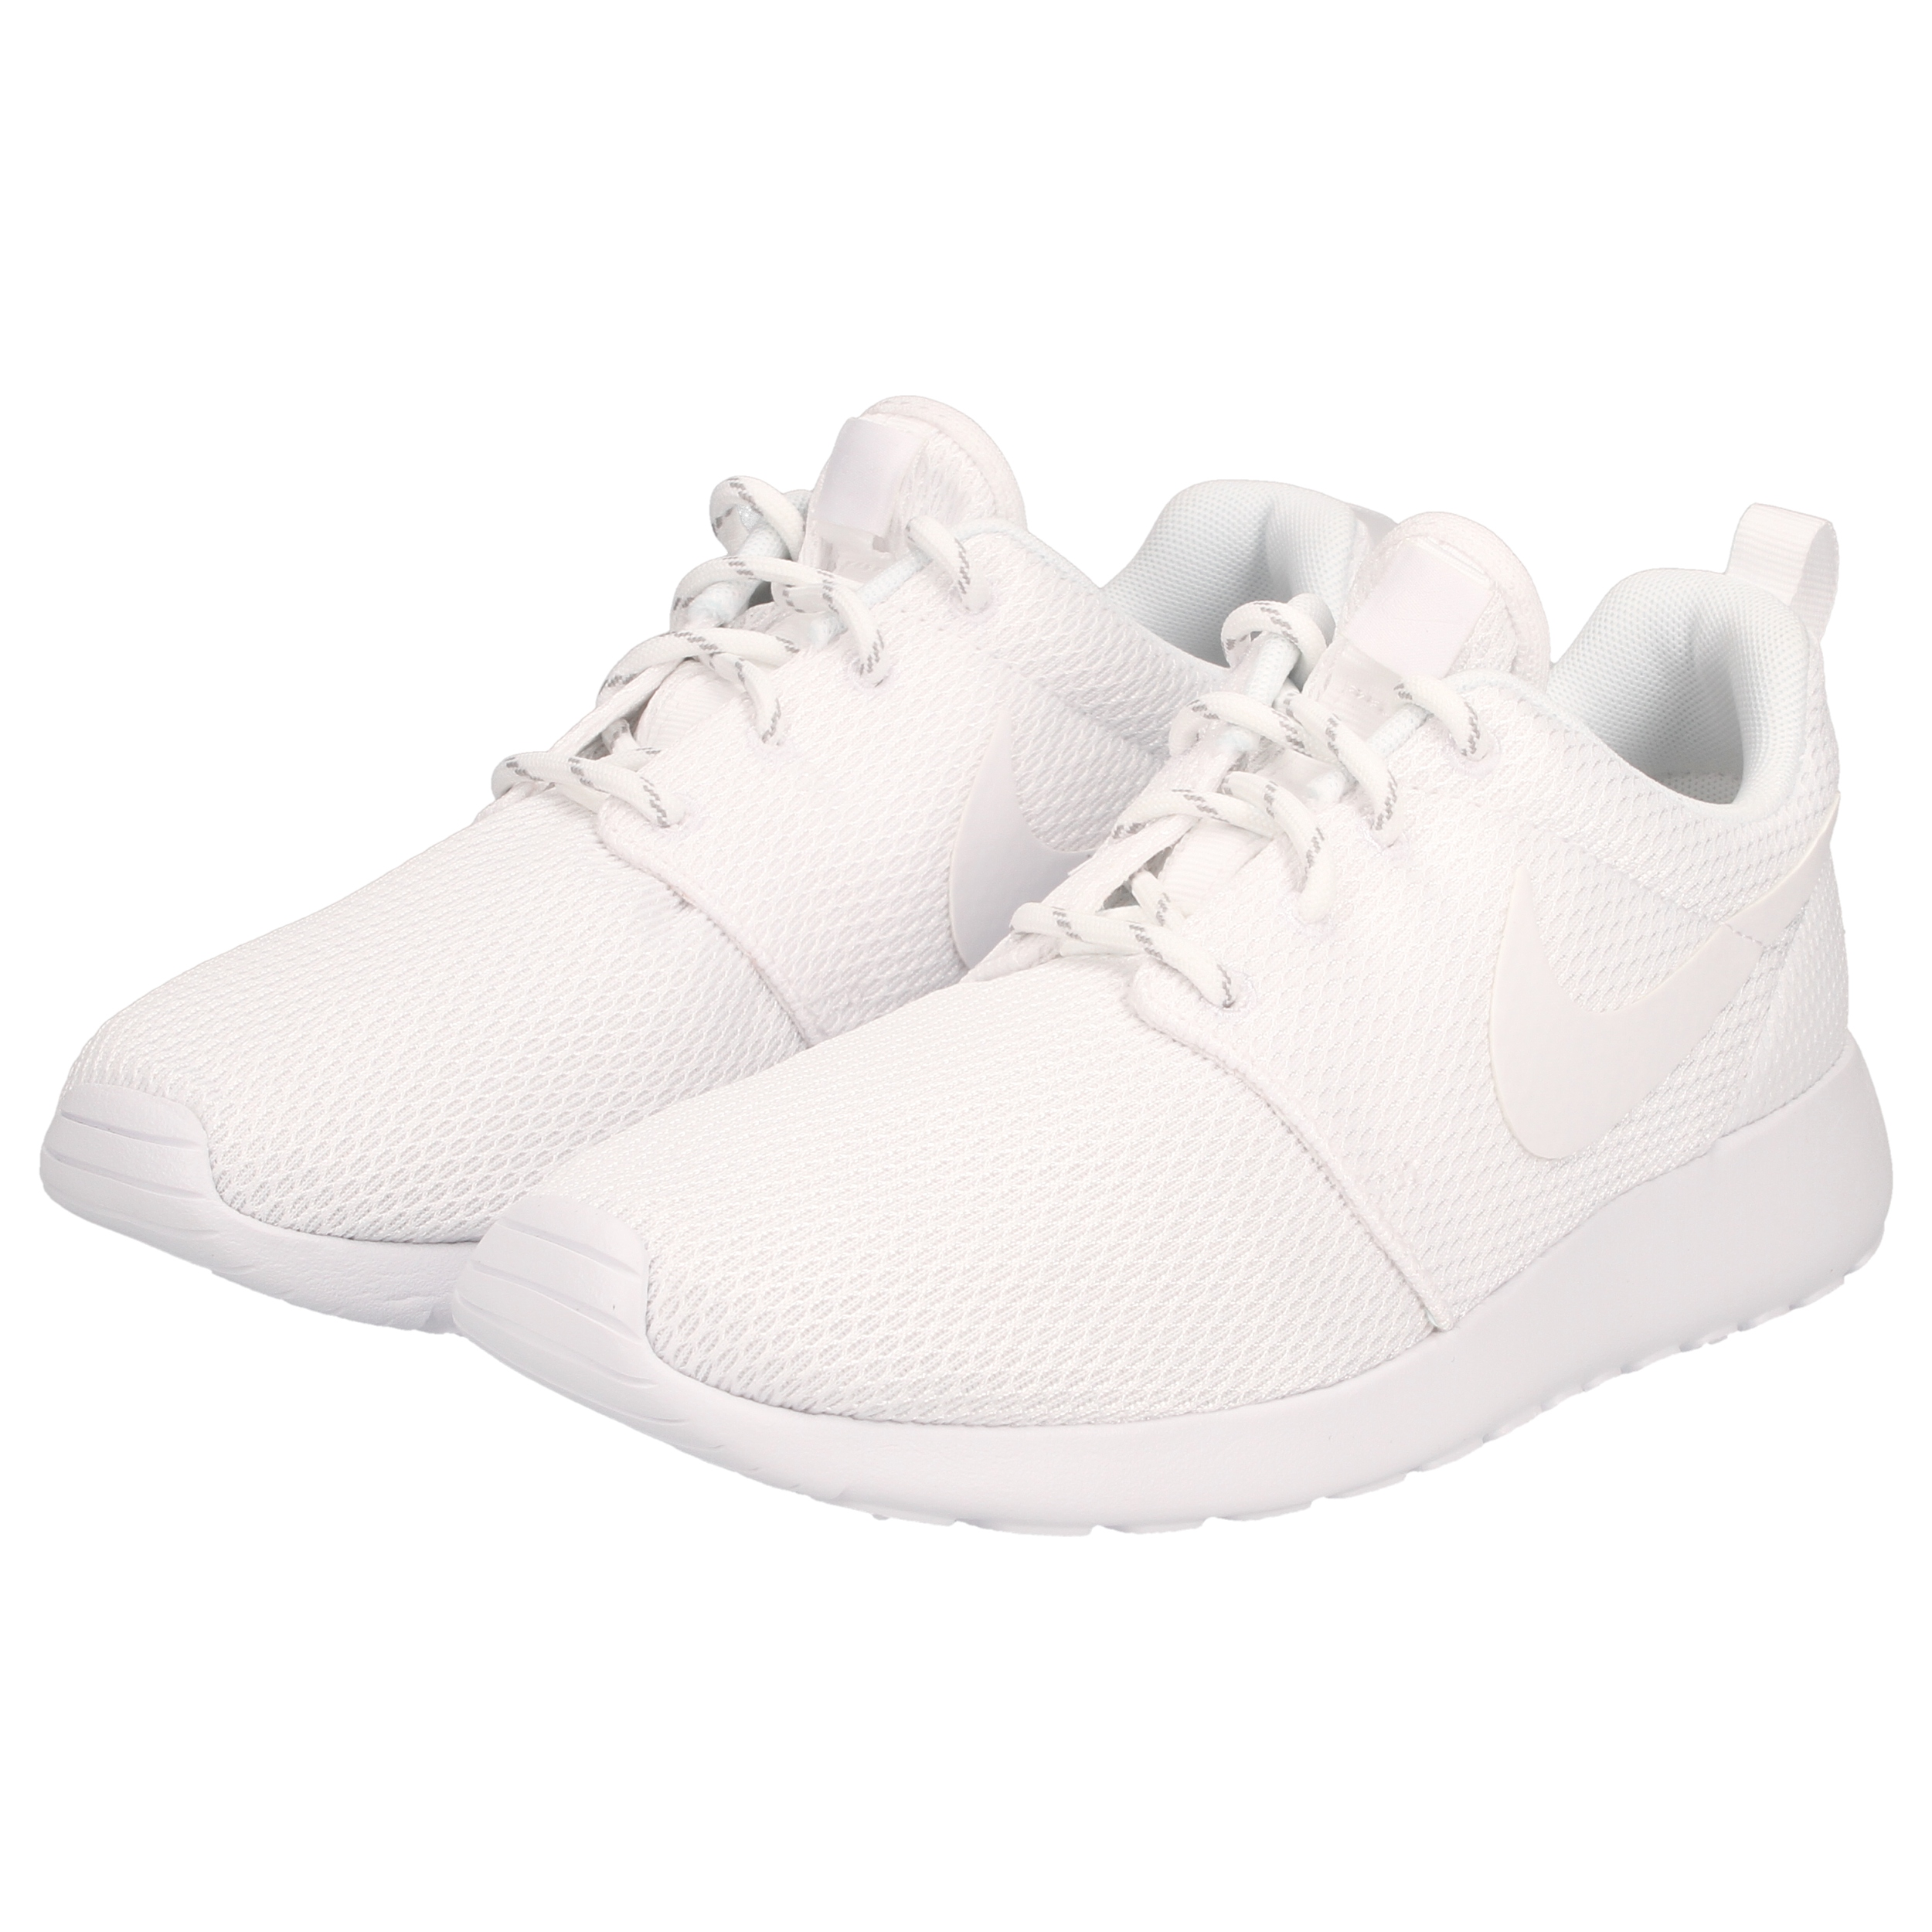 big sale 79f6c 3d134 Buty damskie Nike WMNS Roshe Run One 511882111 38 (7572339340)